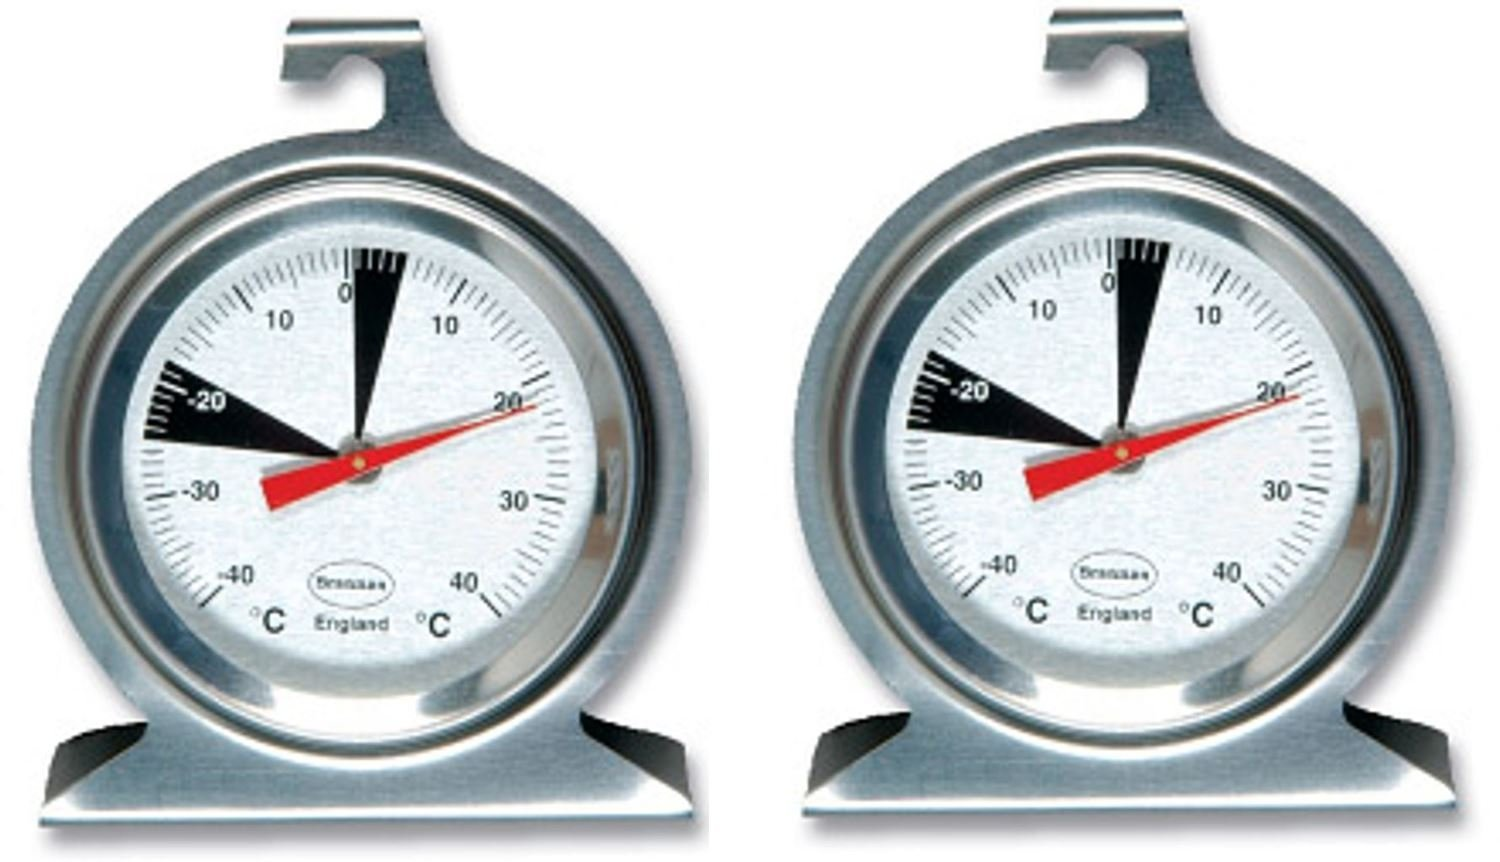 2 x Brannan Premium Dial Fridge Freezer Thermometer